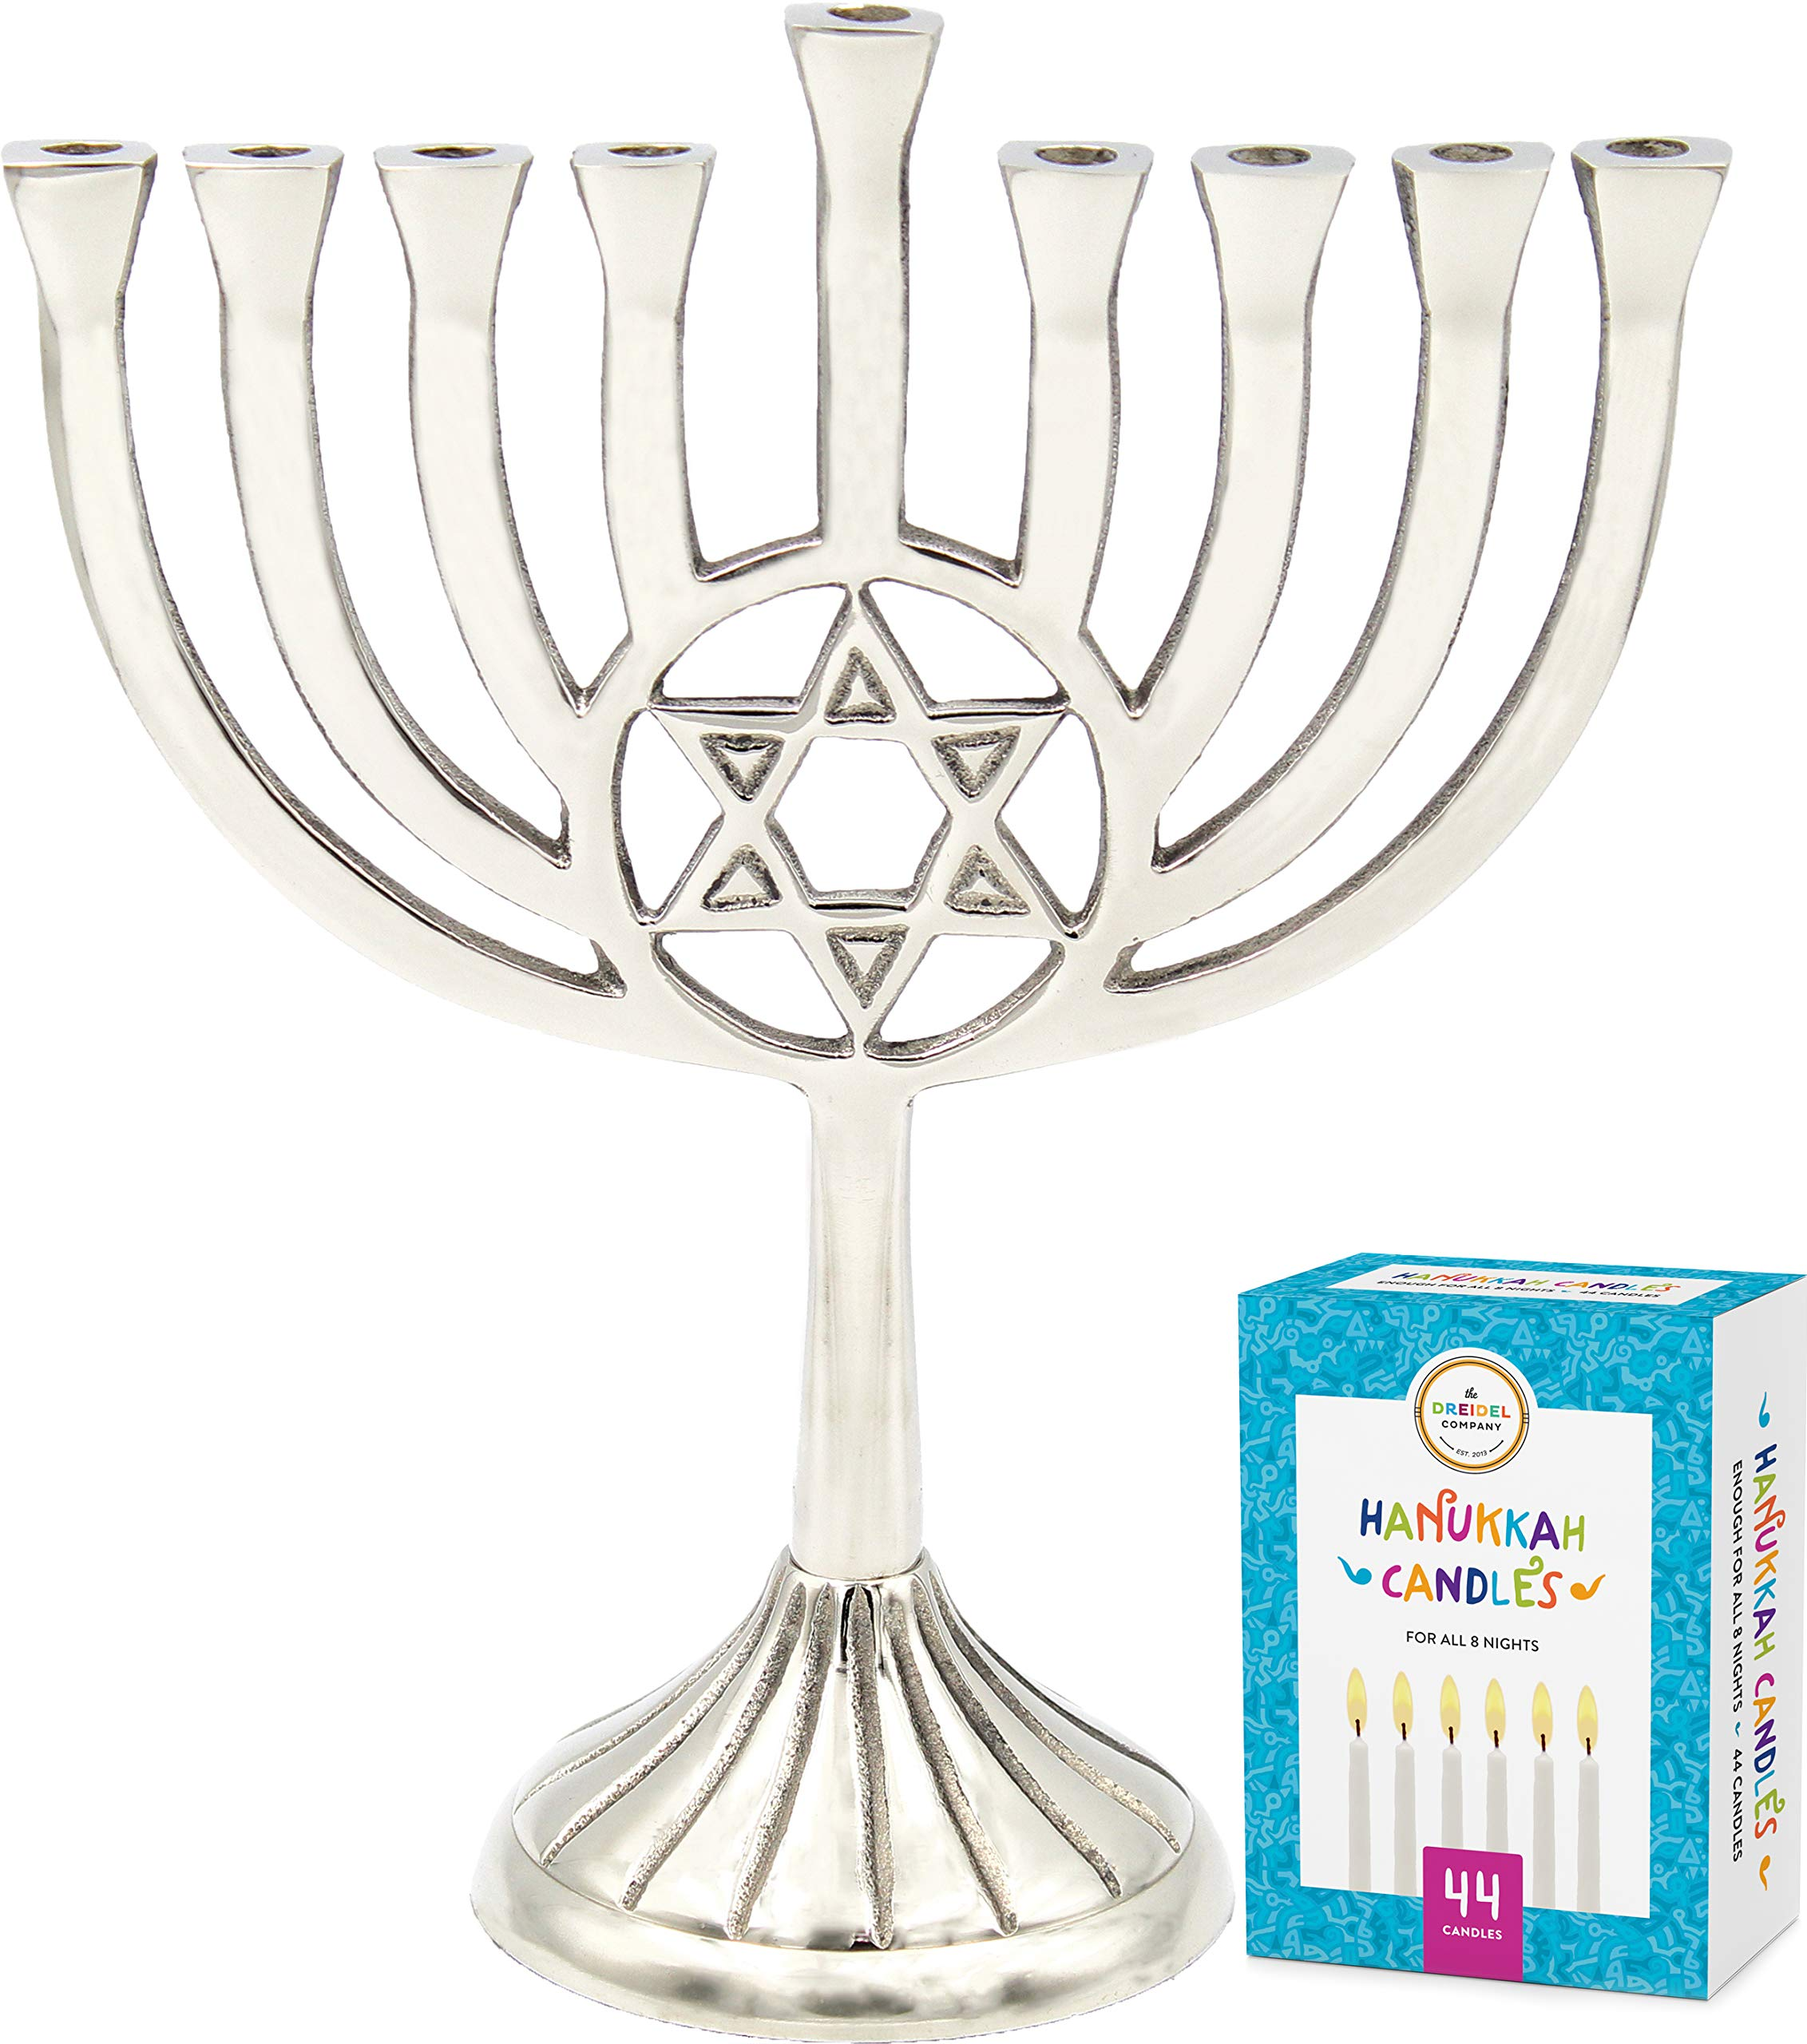 The Dreidel Company Hanukkah Menorah with Traditional Star of David Polished Aluminum Finish, Full Size 9'' - Includes Box of 44 Elegant White Candles